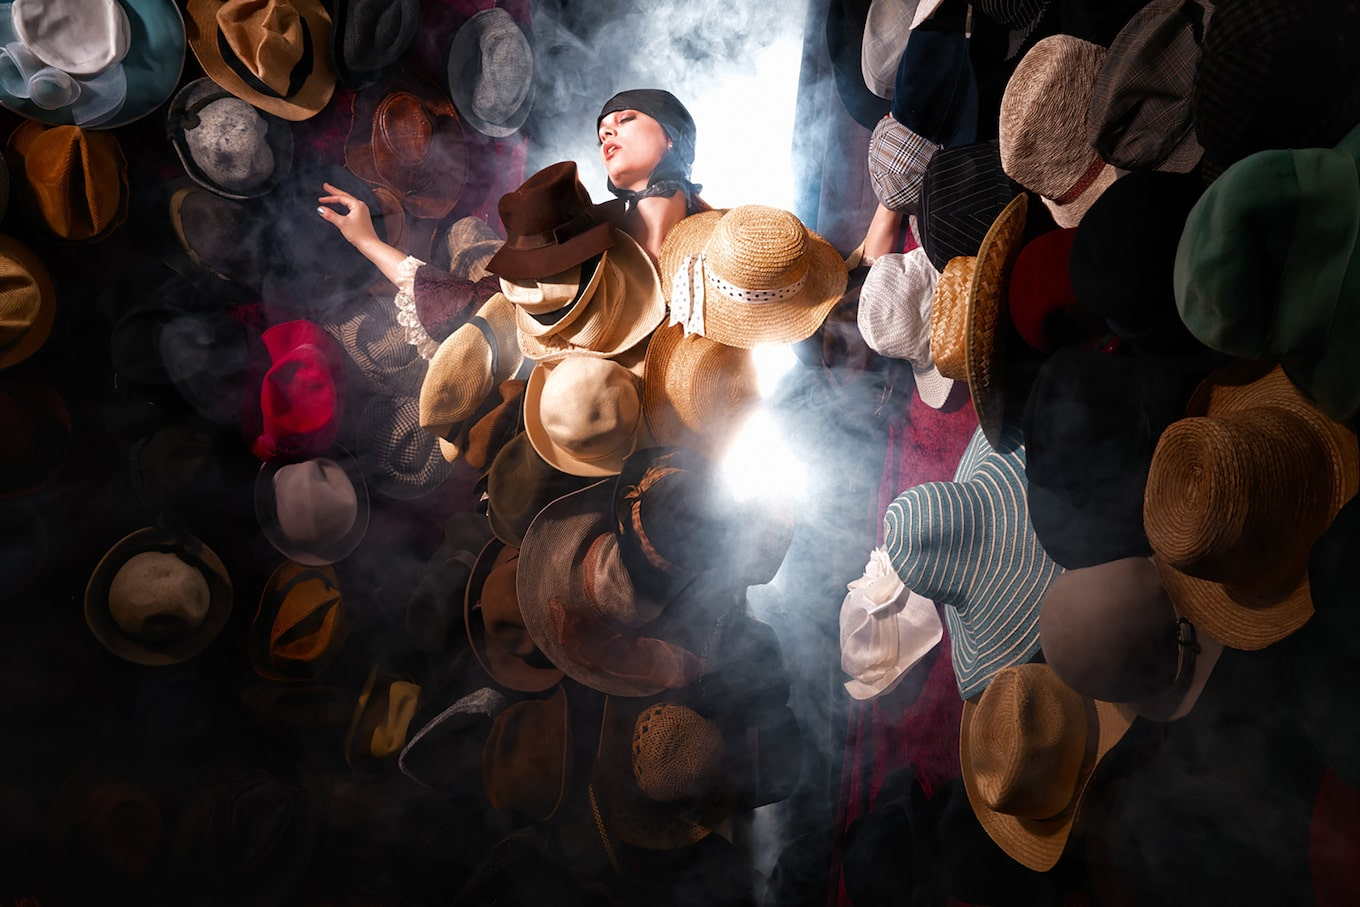 Frank-Doorhof-sony-alpha-7RII-model-surrounded-by-hats-and-smoke